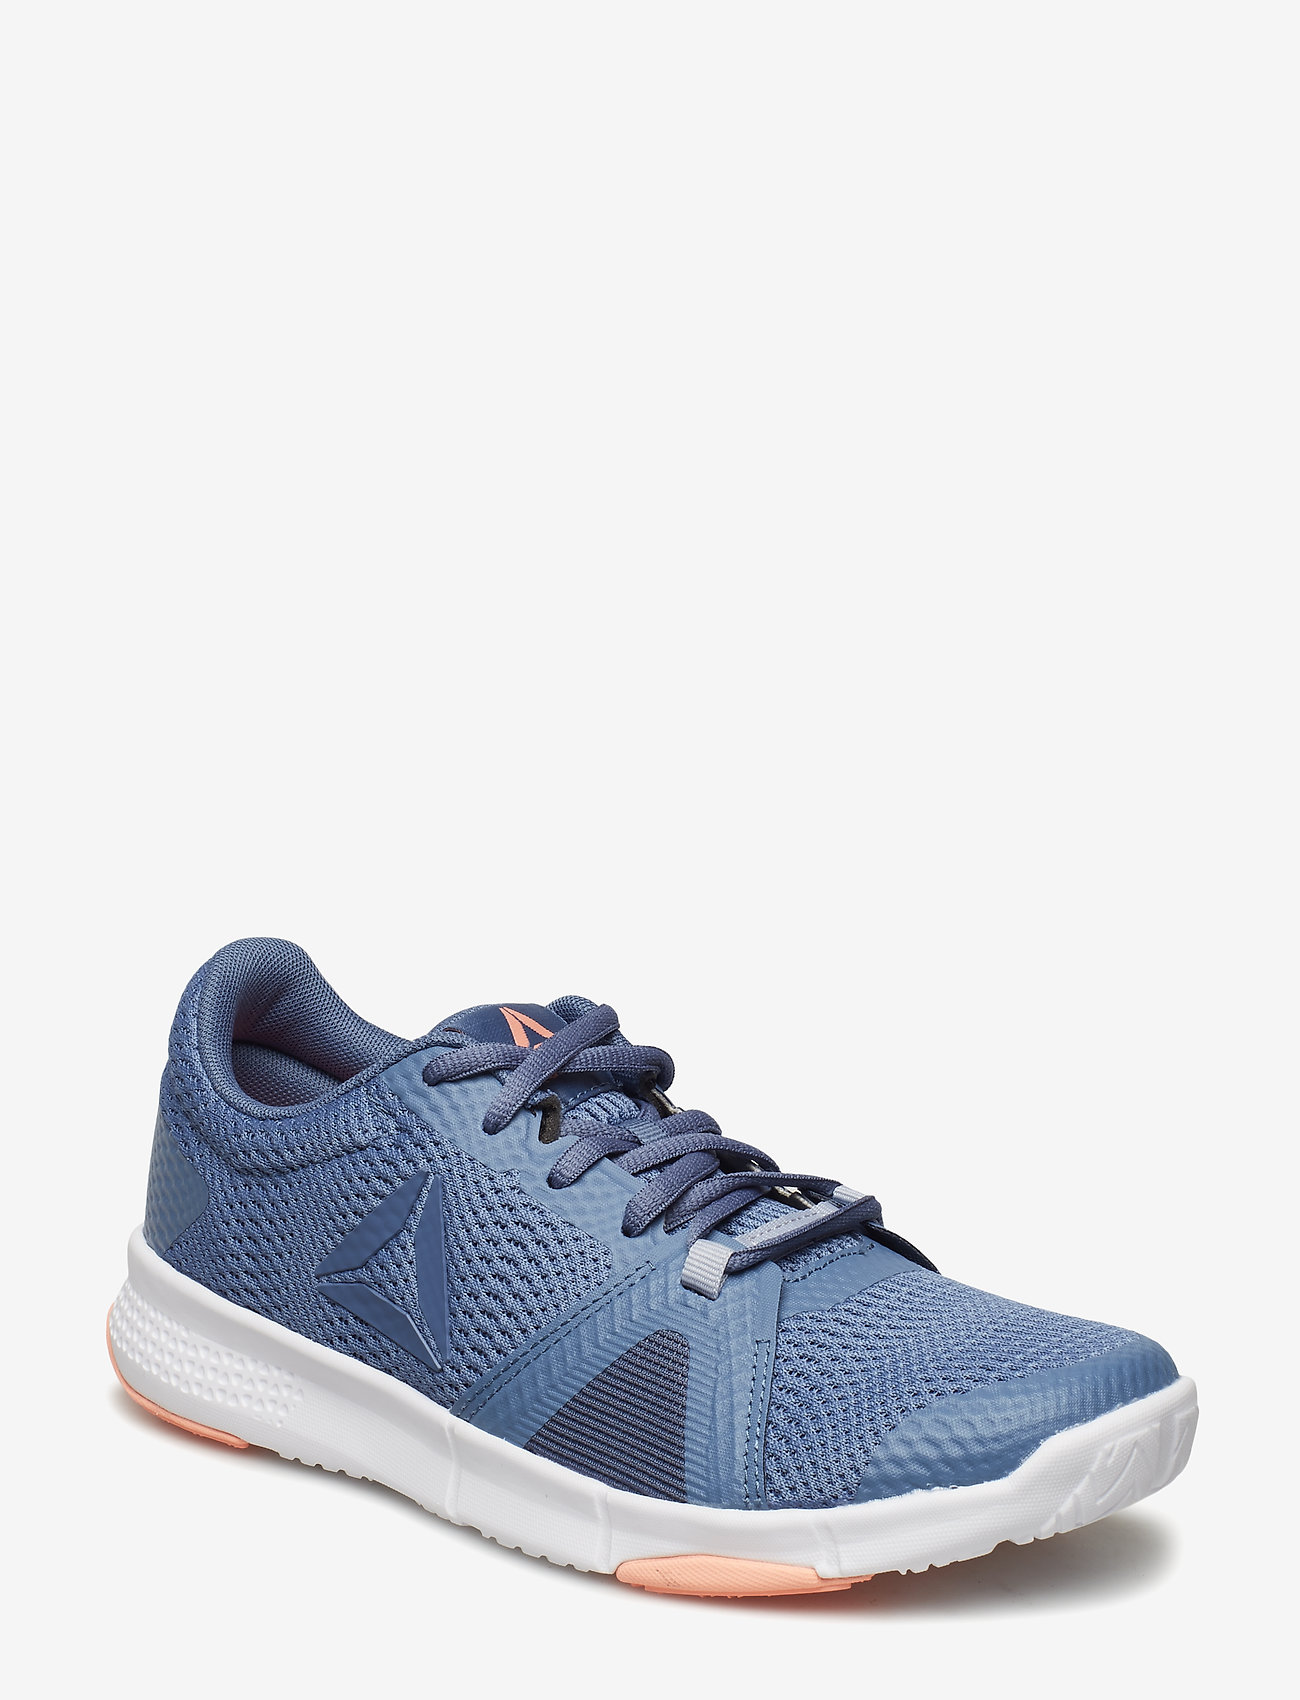 Reebok Performance - REEBOK FLEXILE - training shoes - blue/grey/pink/white